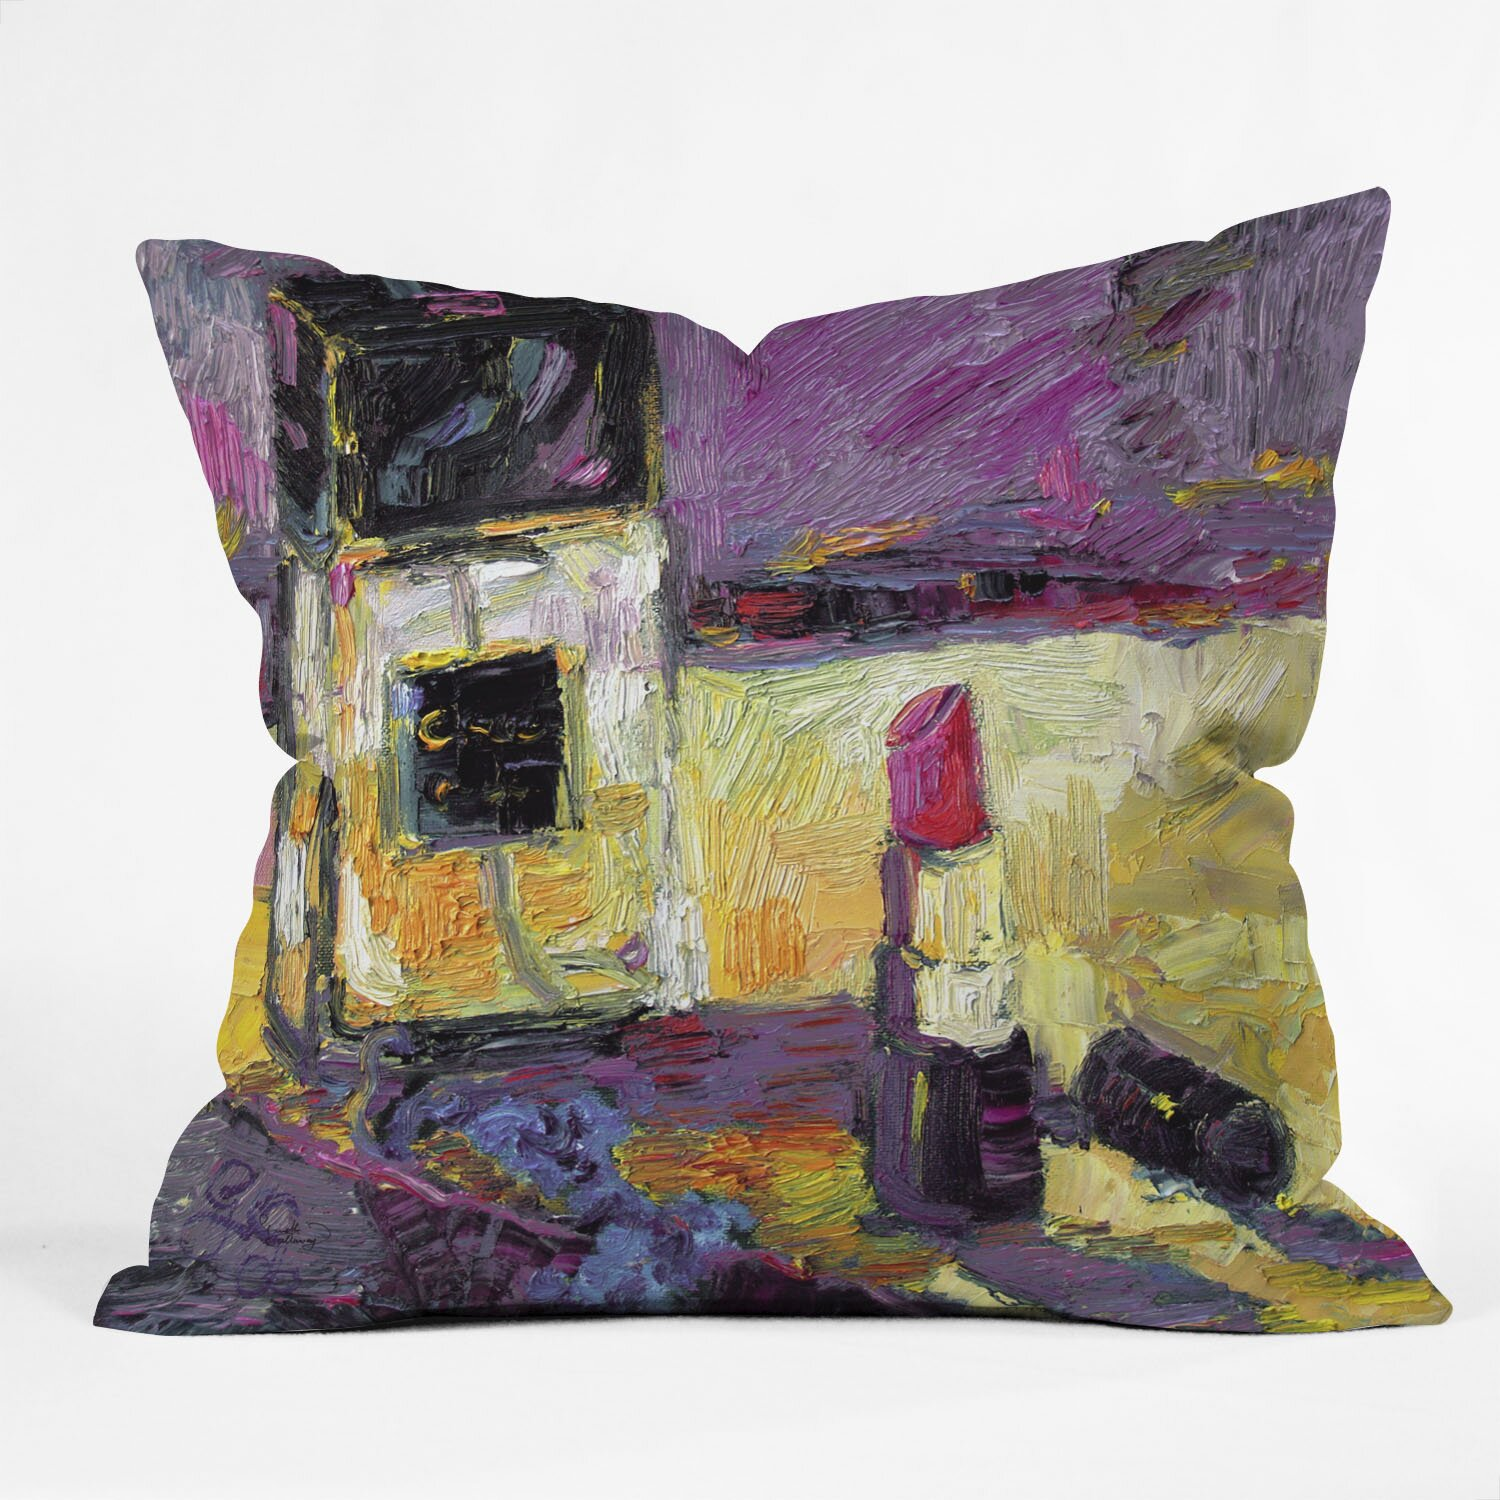 Oversized Decorative Pillow Ideas : Ginette Fine Art Coco Indoor/Outdoor Throw Pillow Wayfair.ca